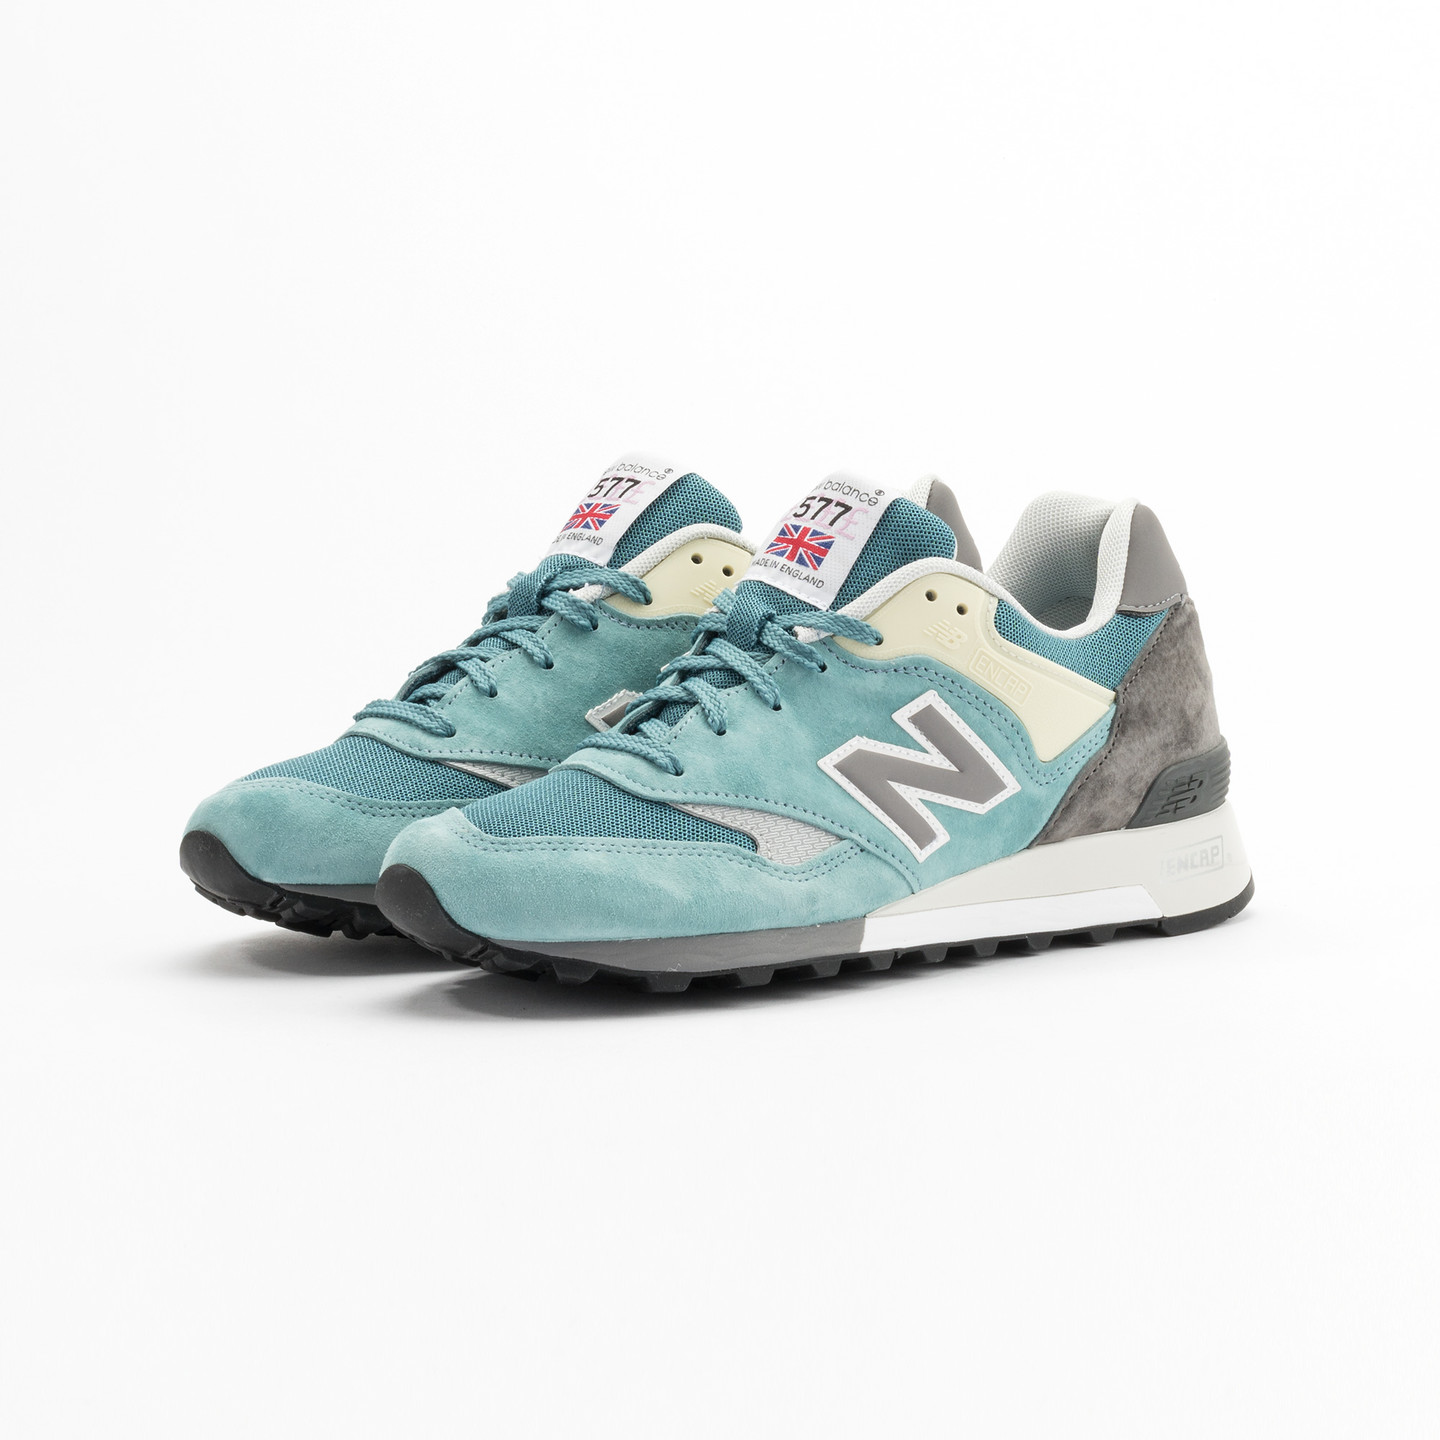 New Balance M577 ETB - Made in England Sea Glass / Grey/ Yellow M577ETB-43